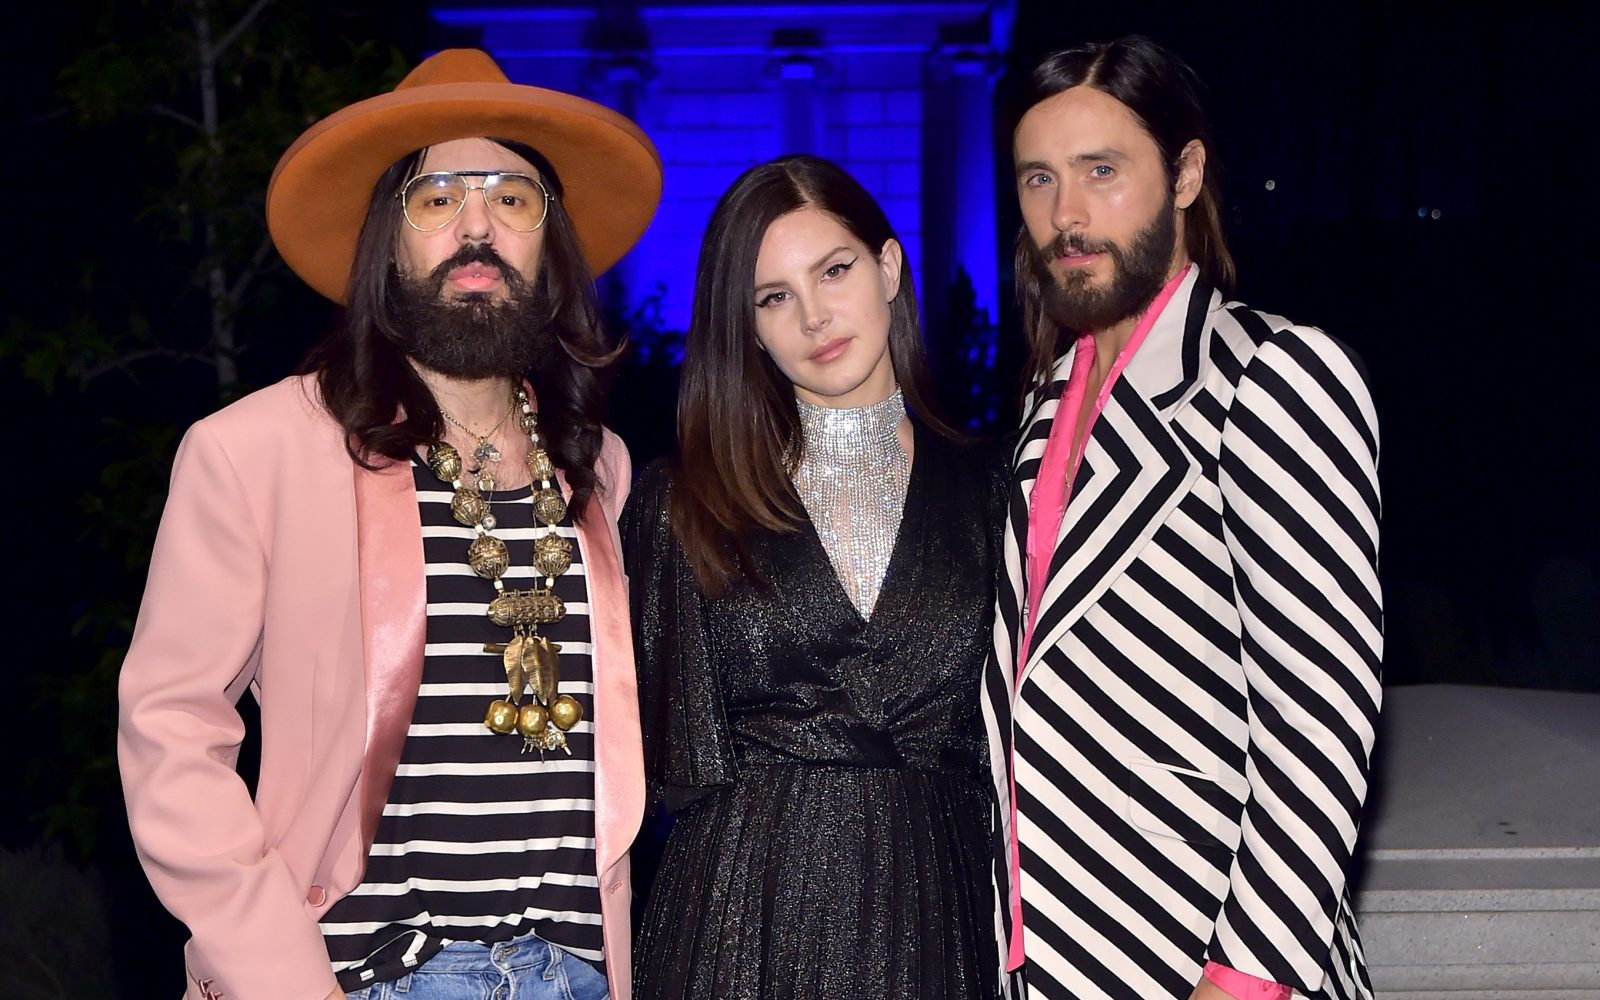 45e60ee4d Gucci Creative Director Alessandro Michele, Lana Del Rey, and Jared Leto  attend the Gucci Guilty launch party at Hollywood Forever on November 2, ...